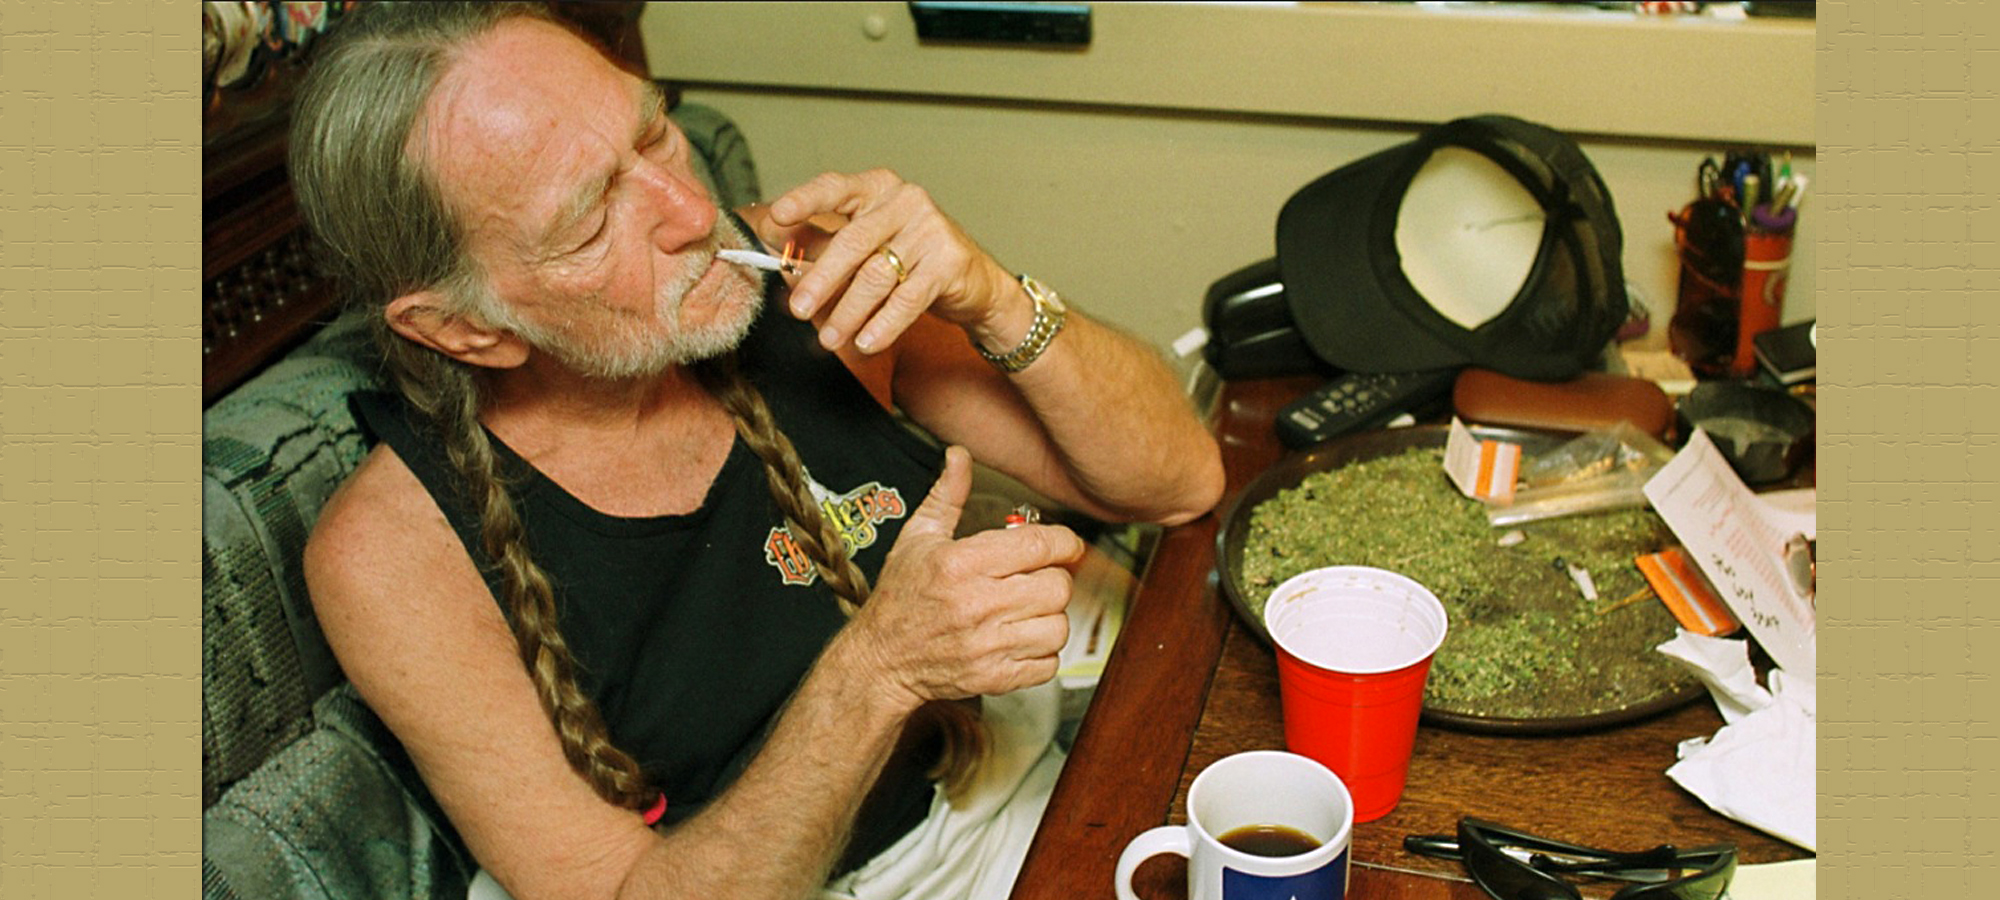 willie-nelson-weed